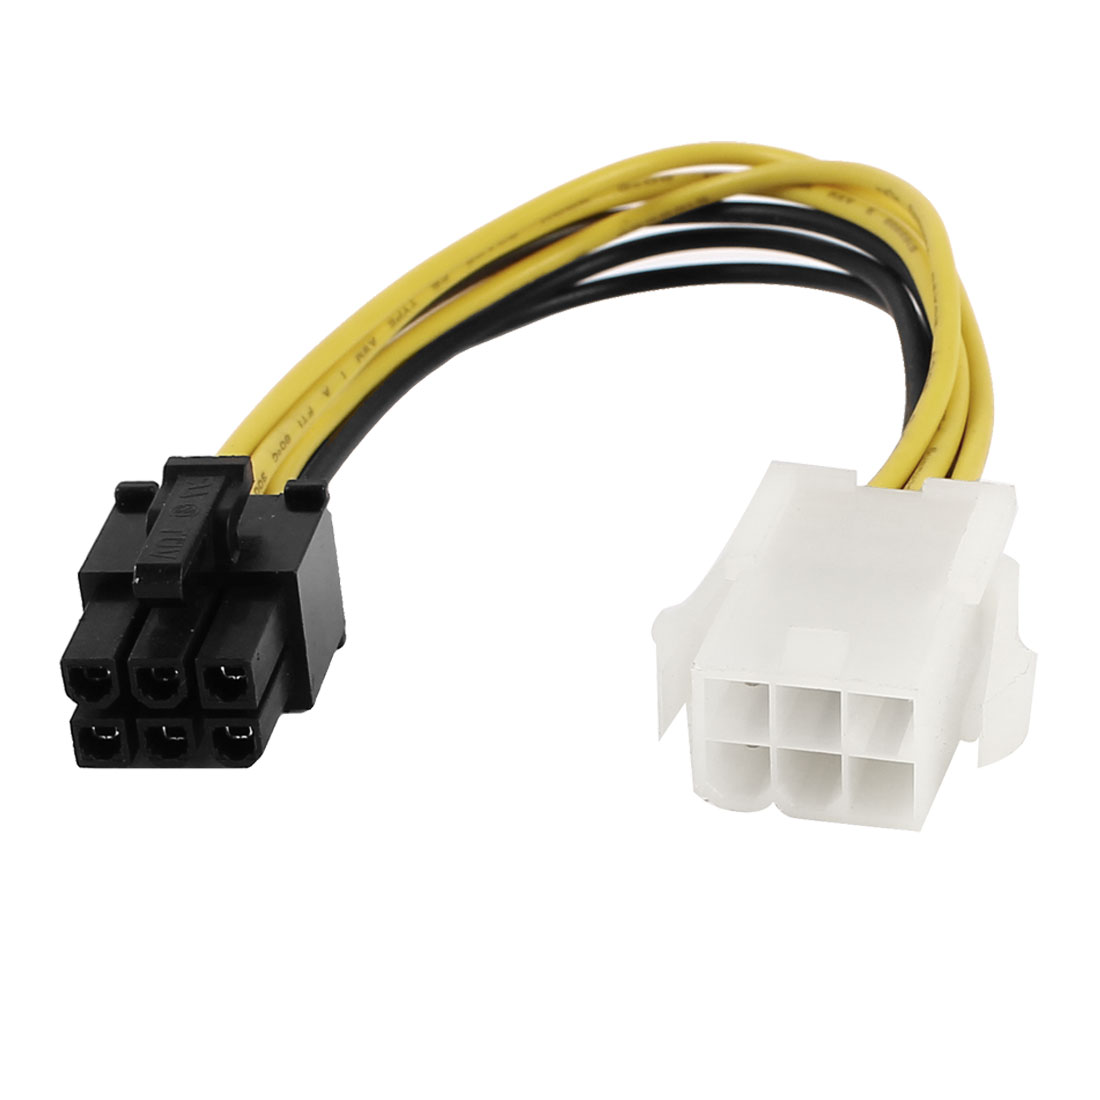 2 Pcs Yellow Black ATX 6pin Male to 6pin Female Power Sata Adapter Cable Lead 20cm 8-inch